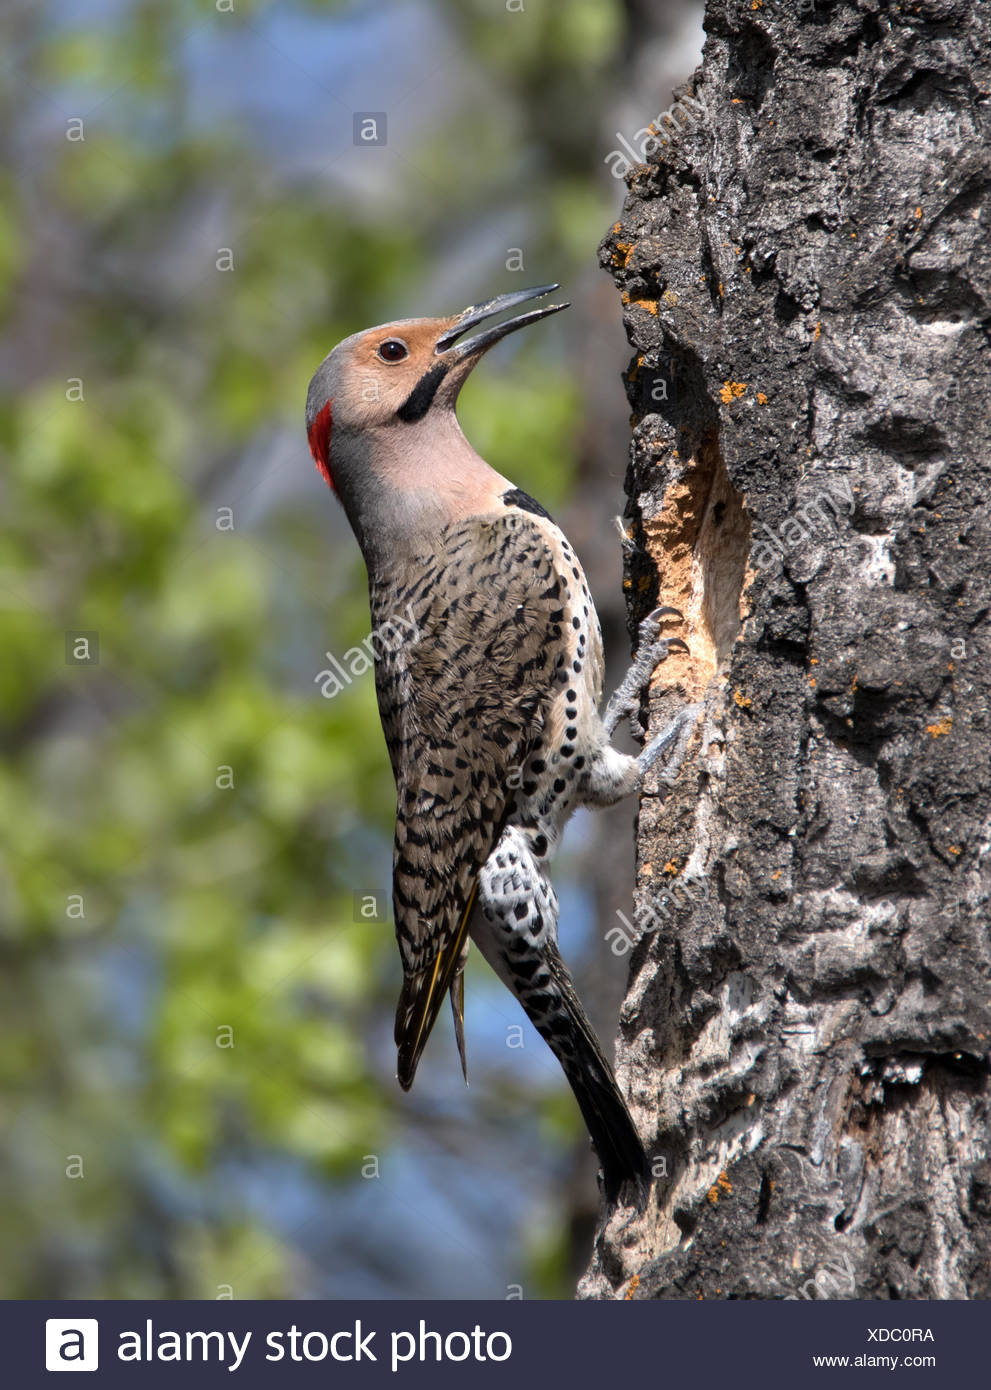 A male Yellow-shafted Northern Flicker, Colaptes auratus,  at a nest hole in Saskatoon, Saskatchewan, Canada - Stock Image